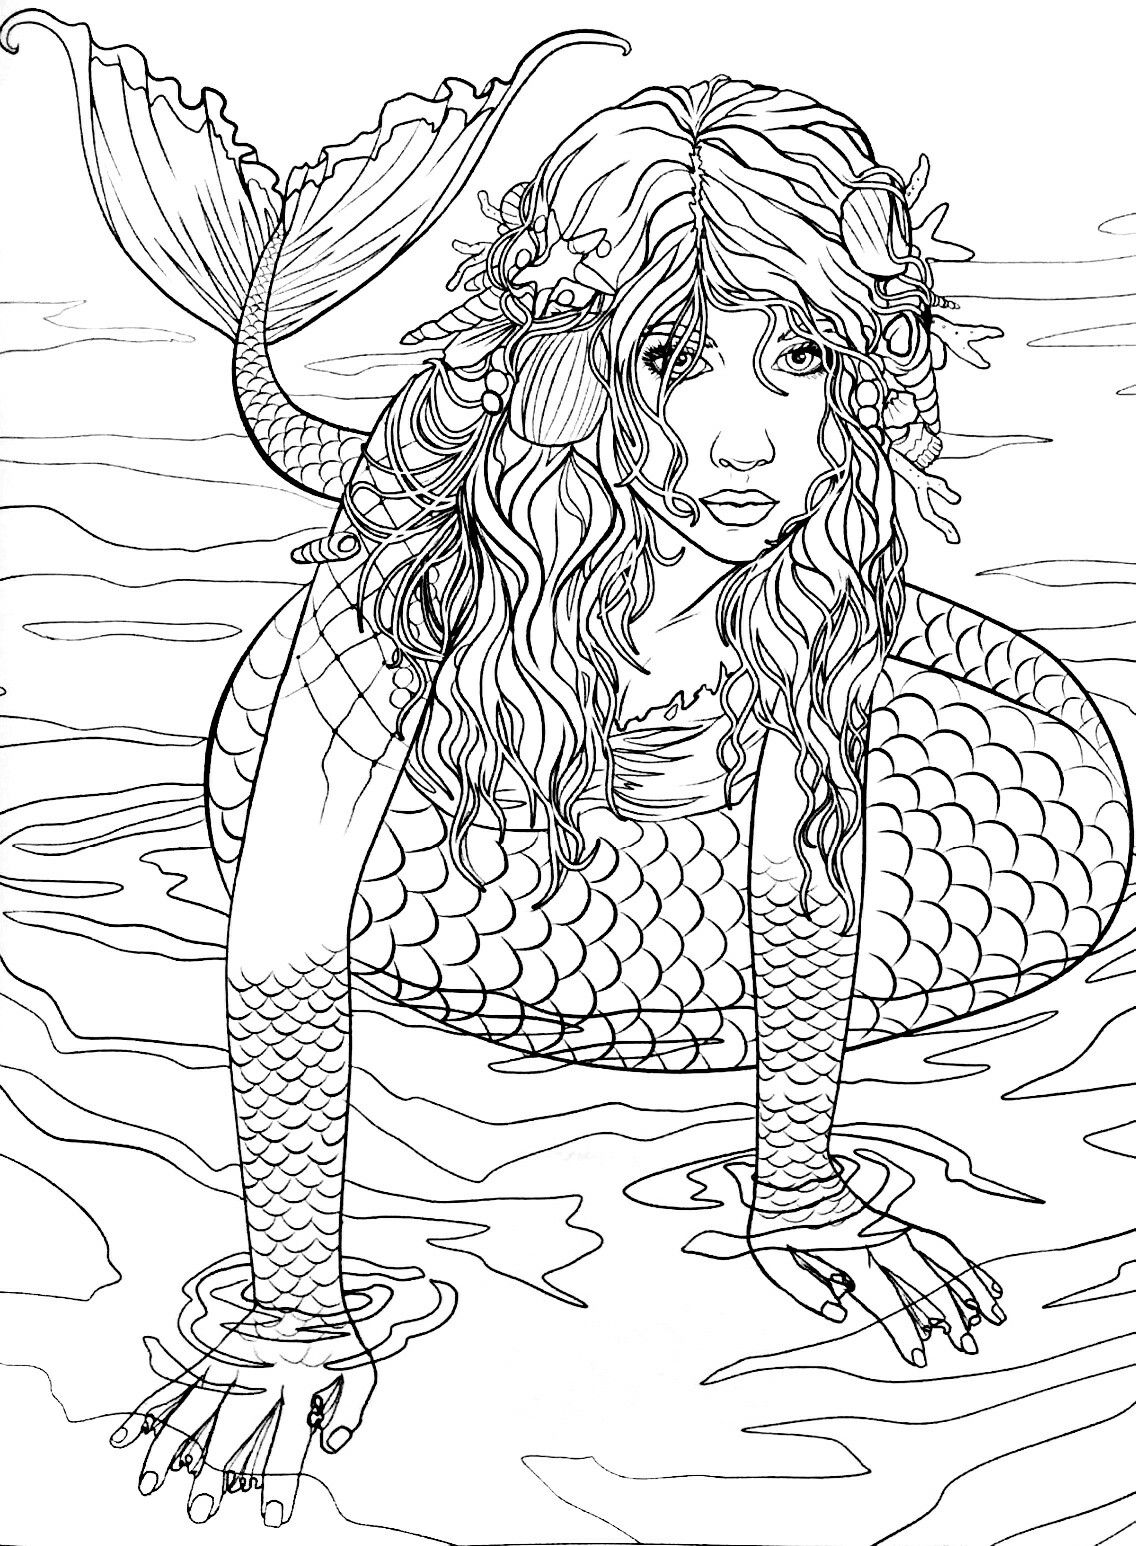 coloring mermaid pages print download find the suitable little mermaid coloring pages mermaid 1 1